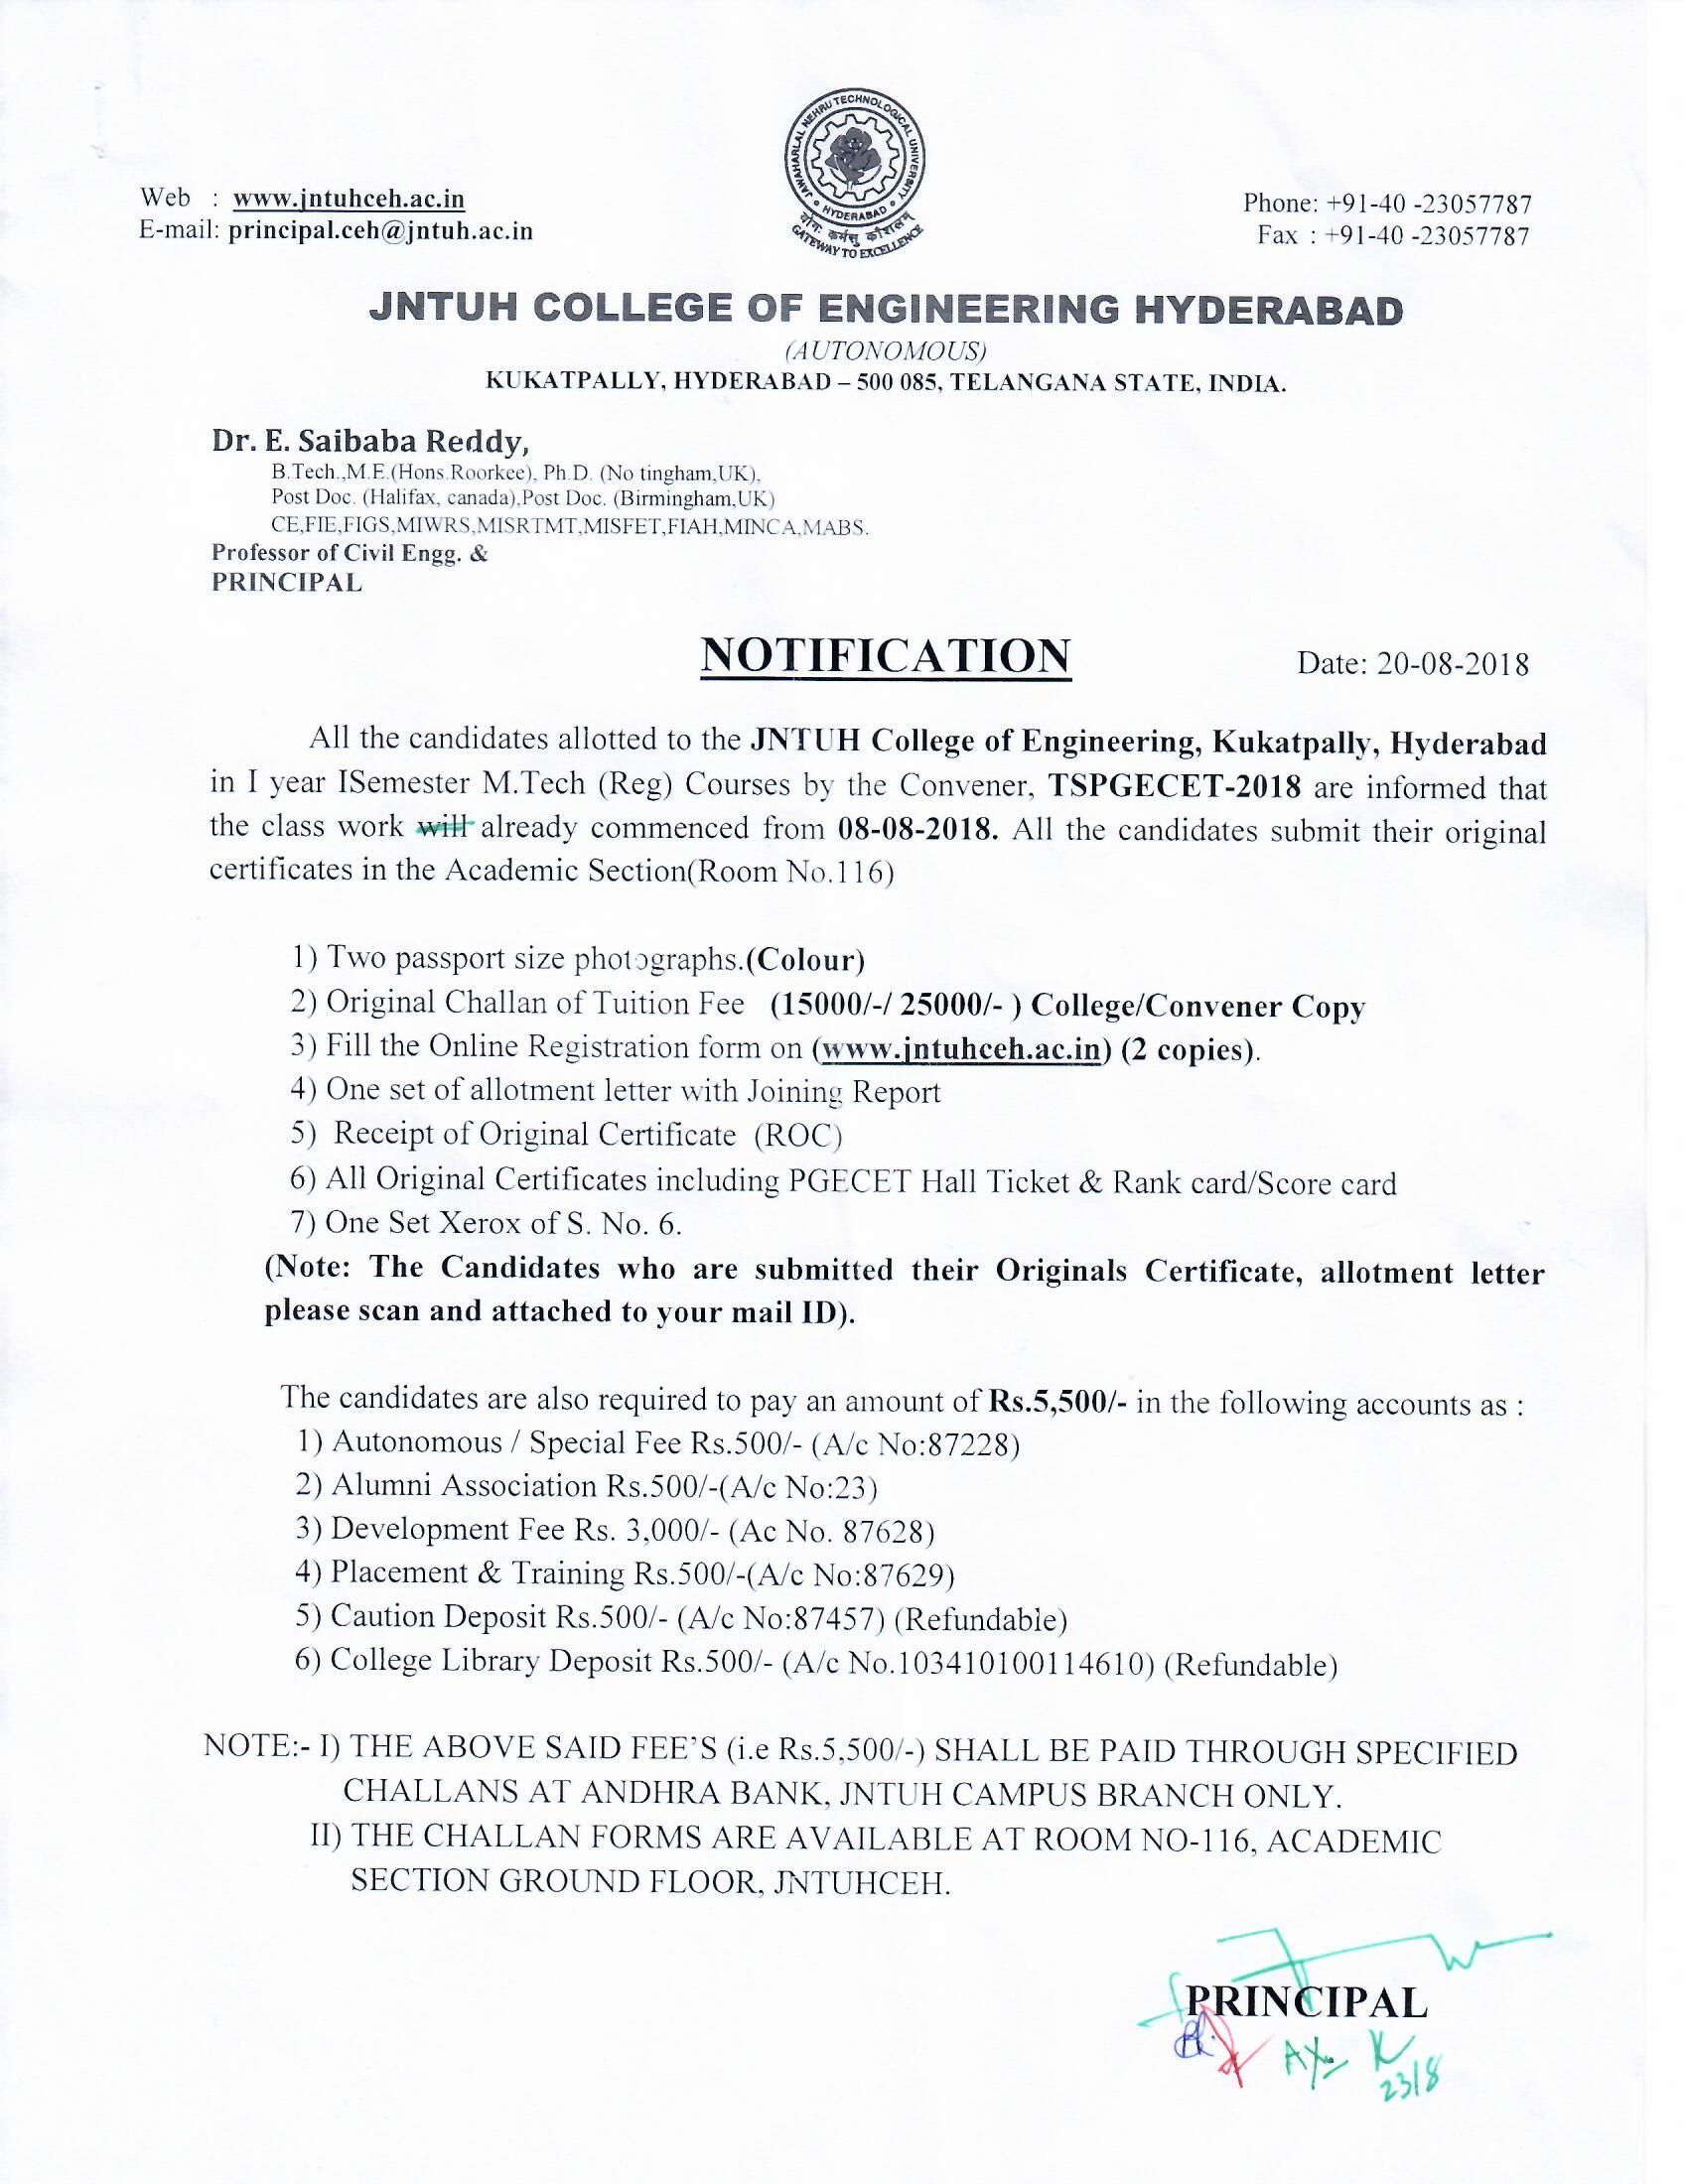 JNTUH College of Engineering Hyderabad (Autonomous)